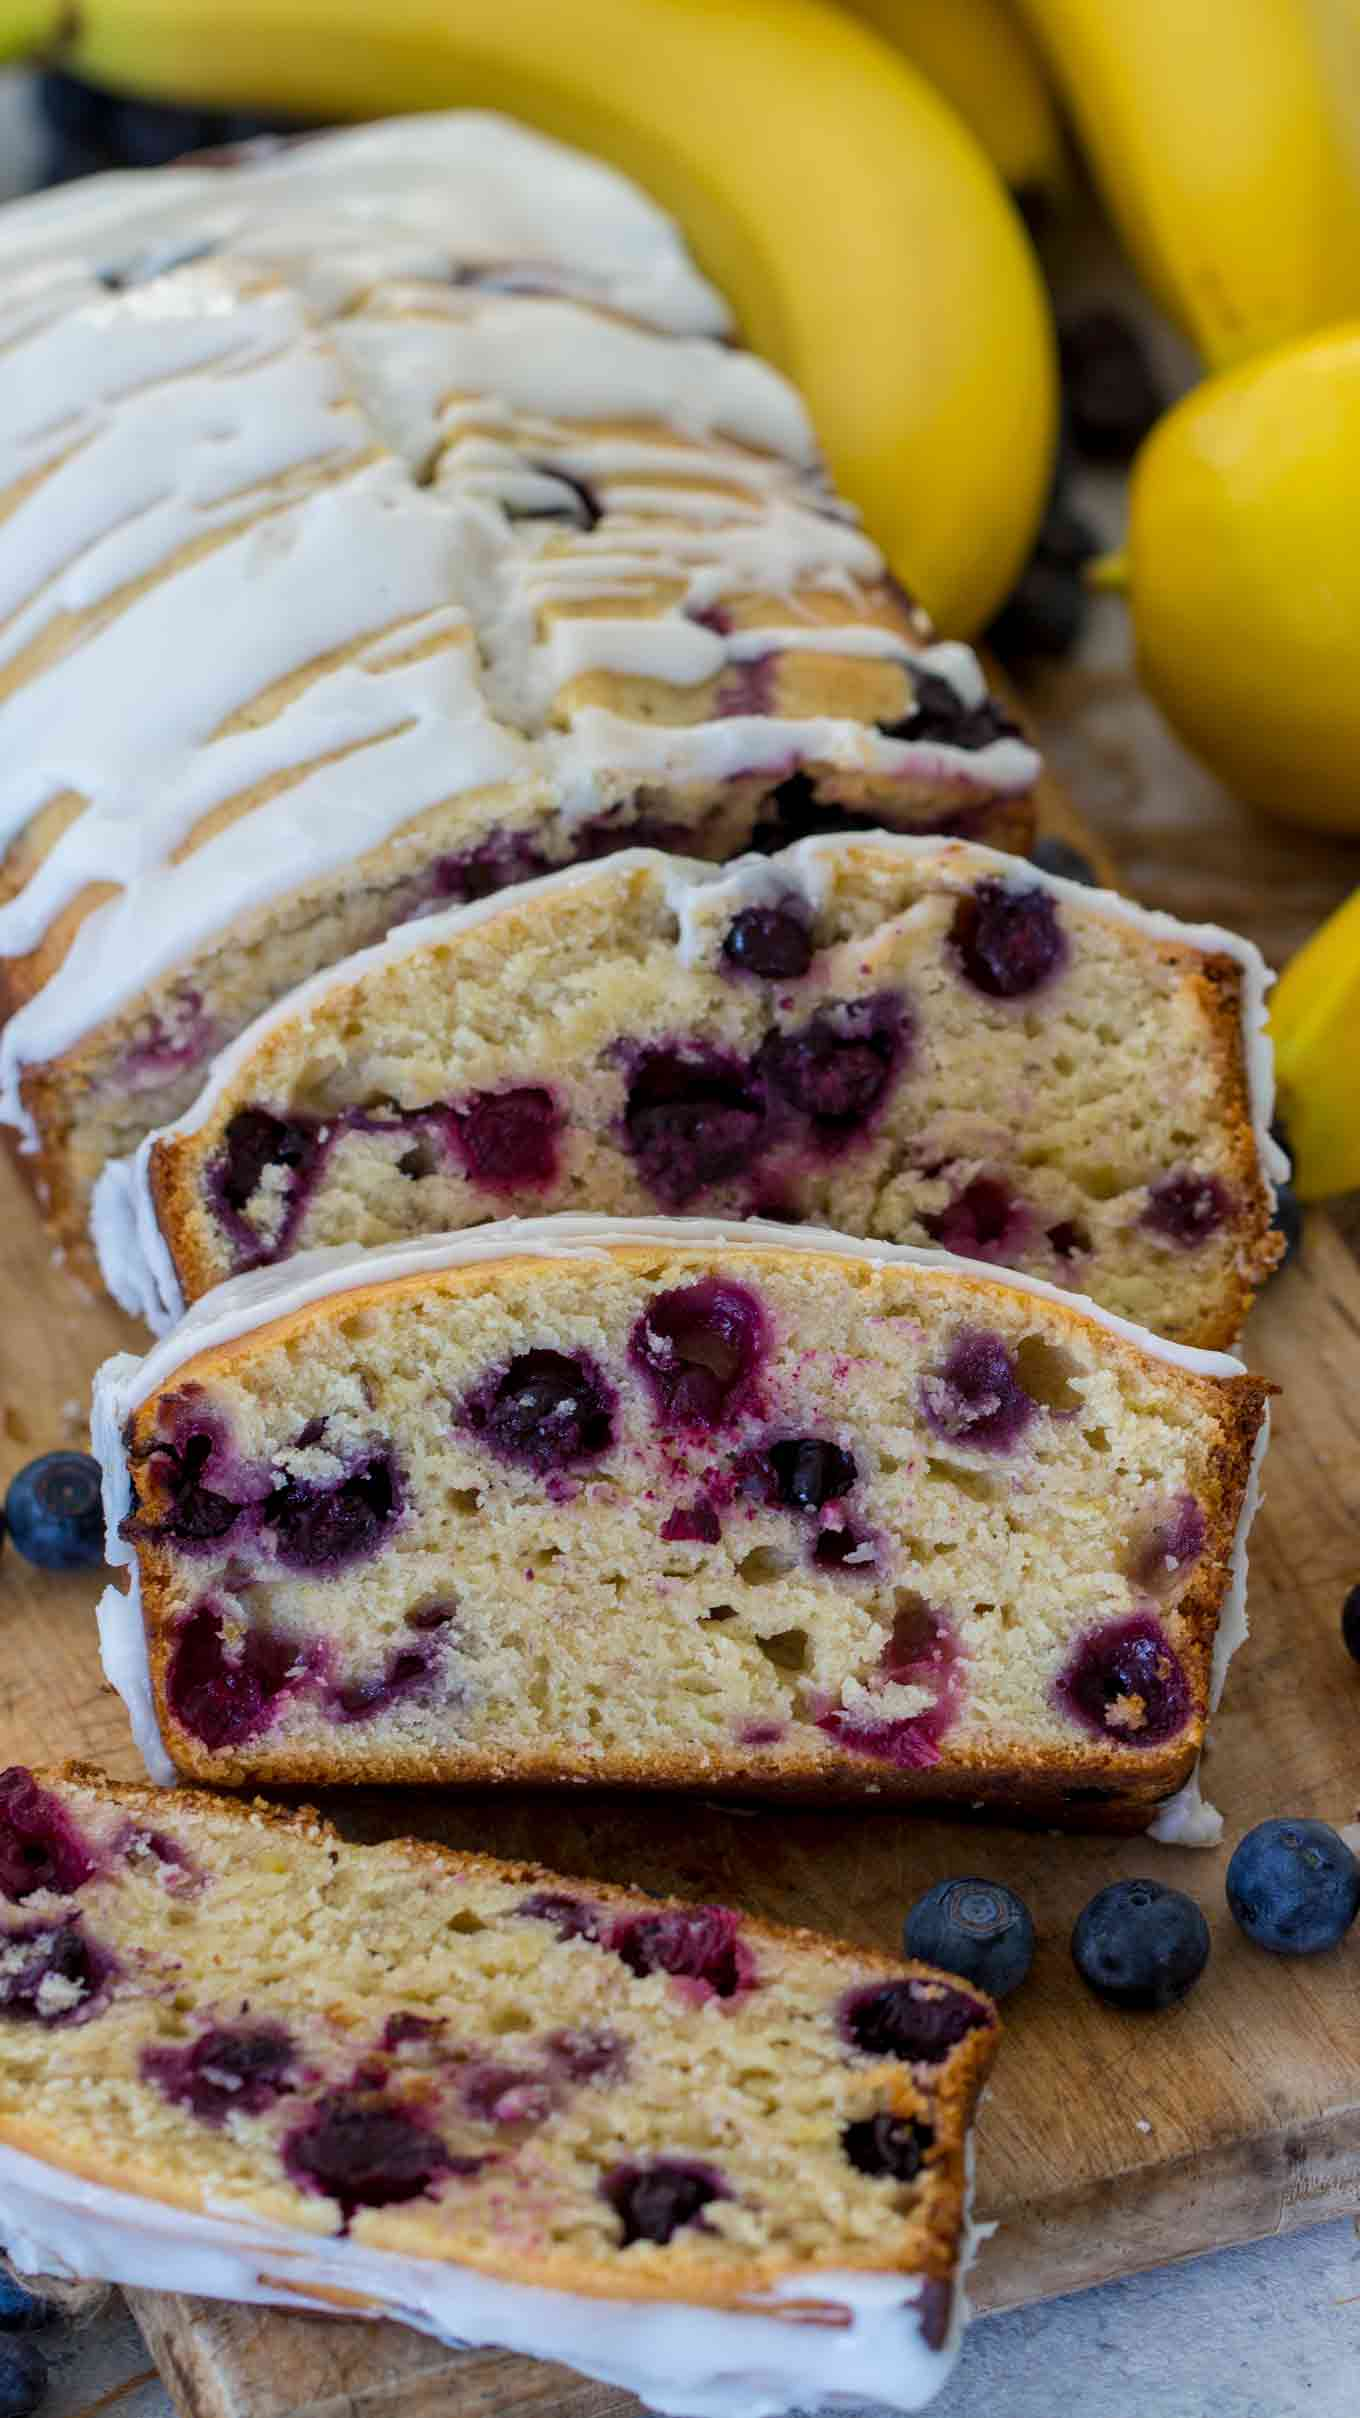 How to Make Blueberry Lemon Banana Bread